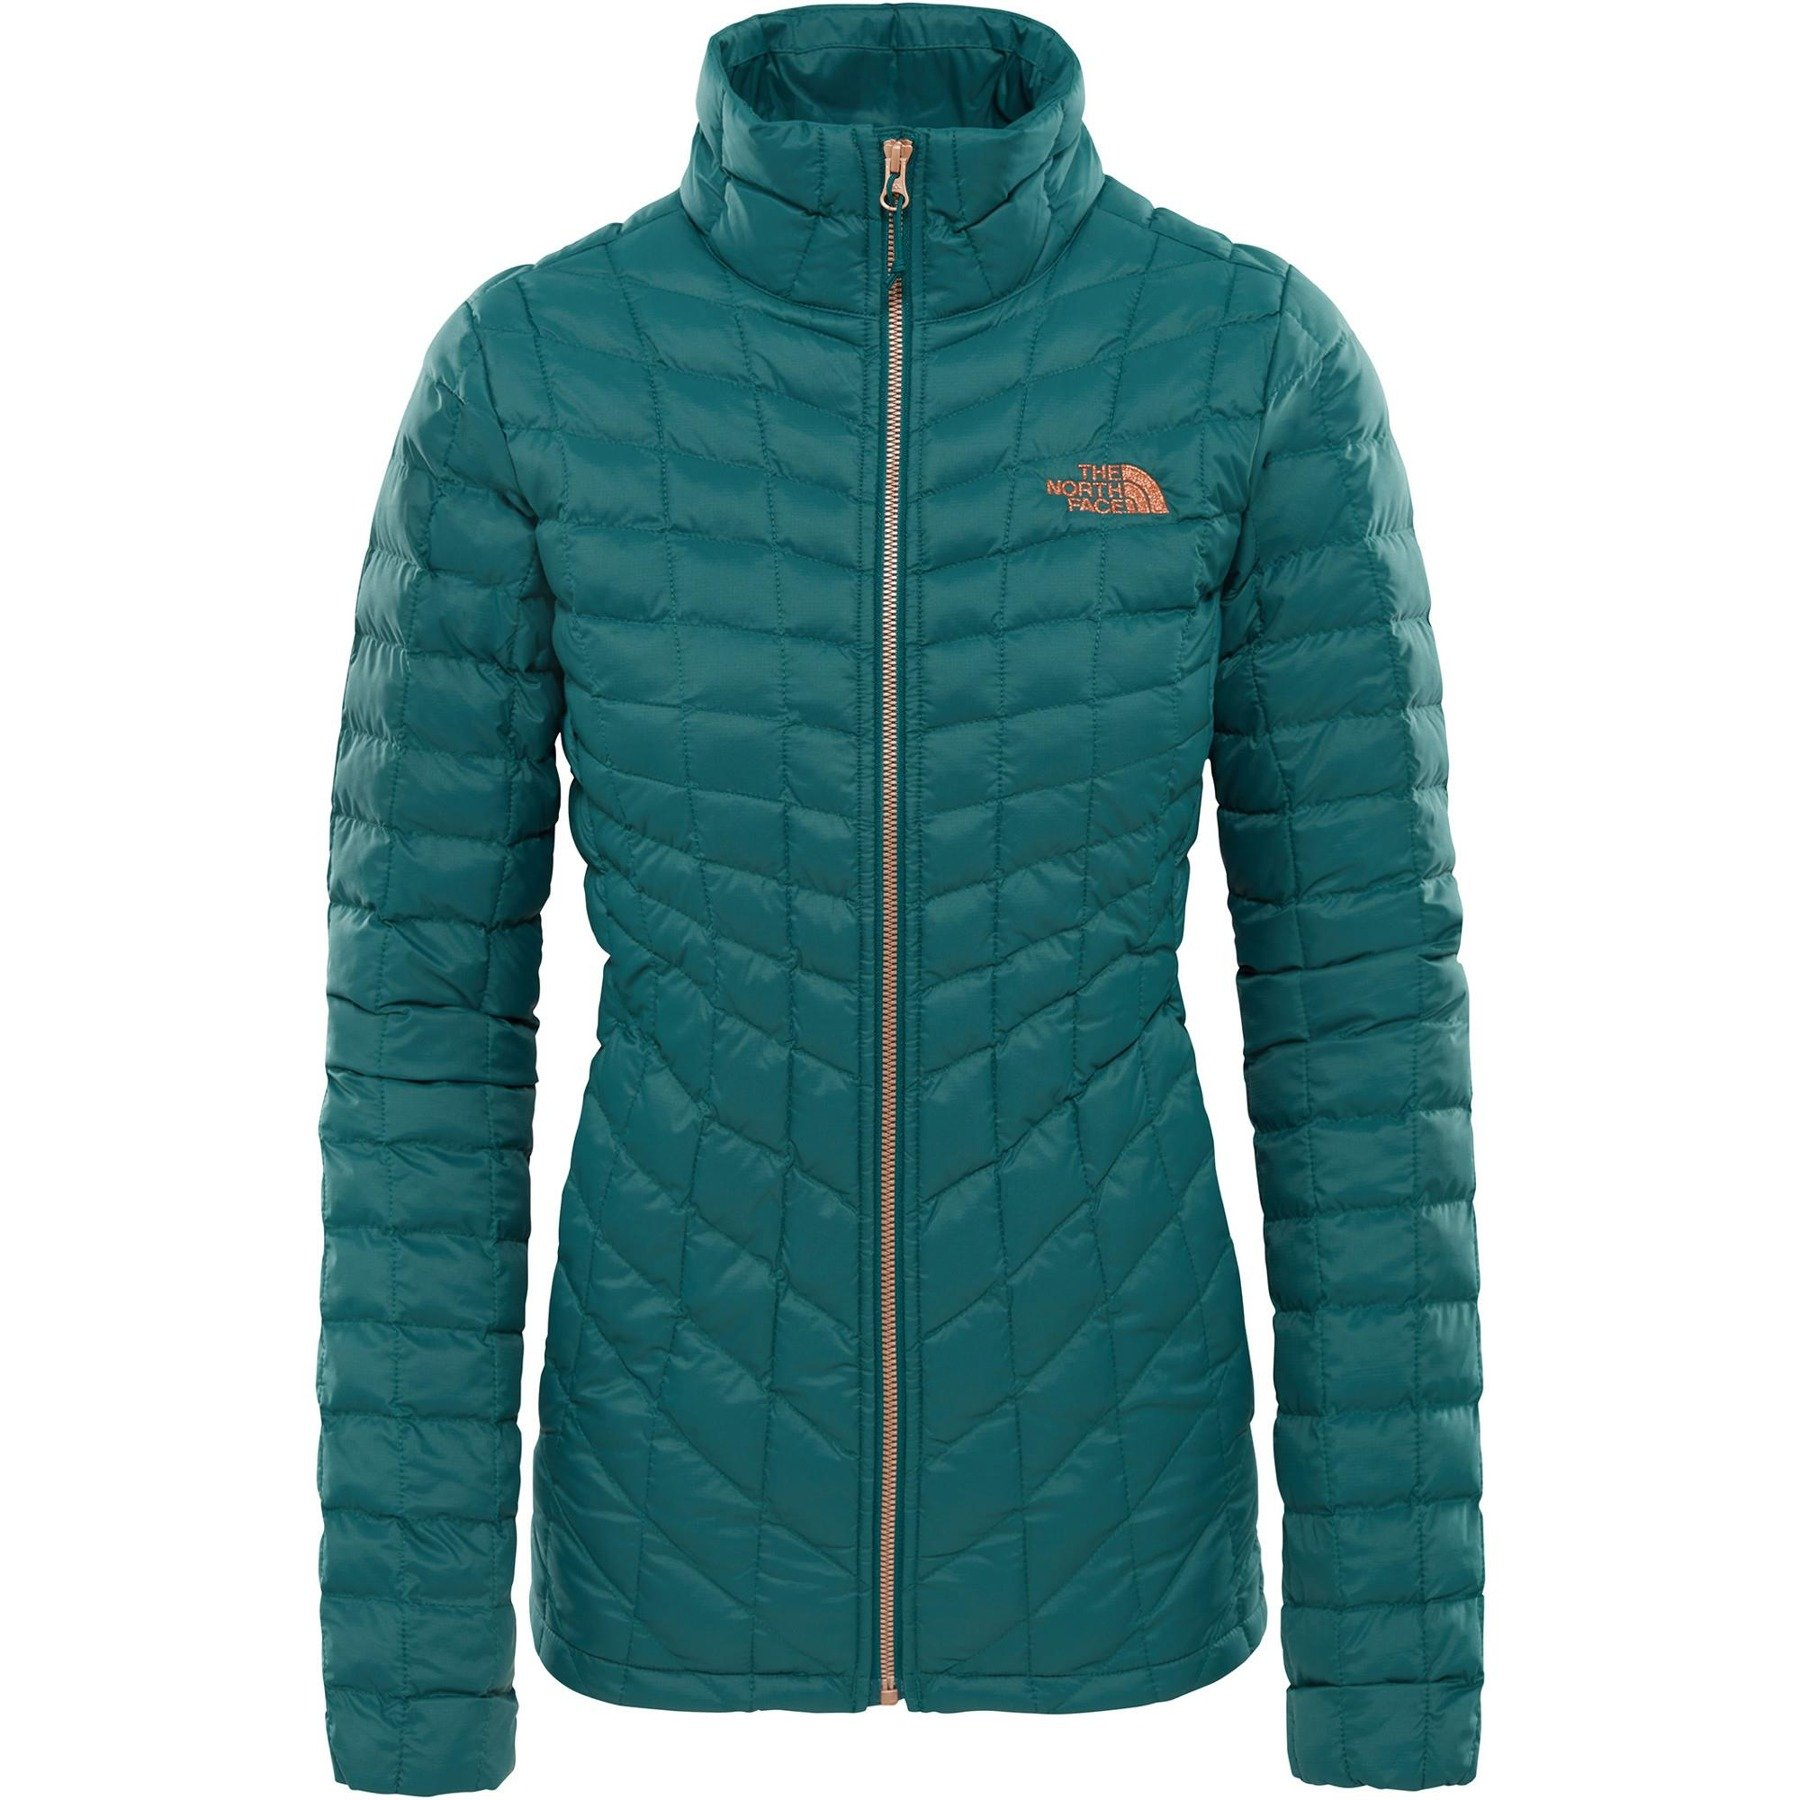 Kurtka The North Face Thermoball  T93BRL6XG